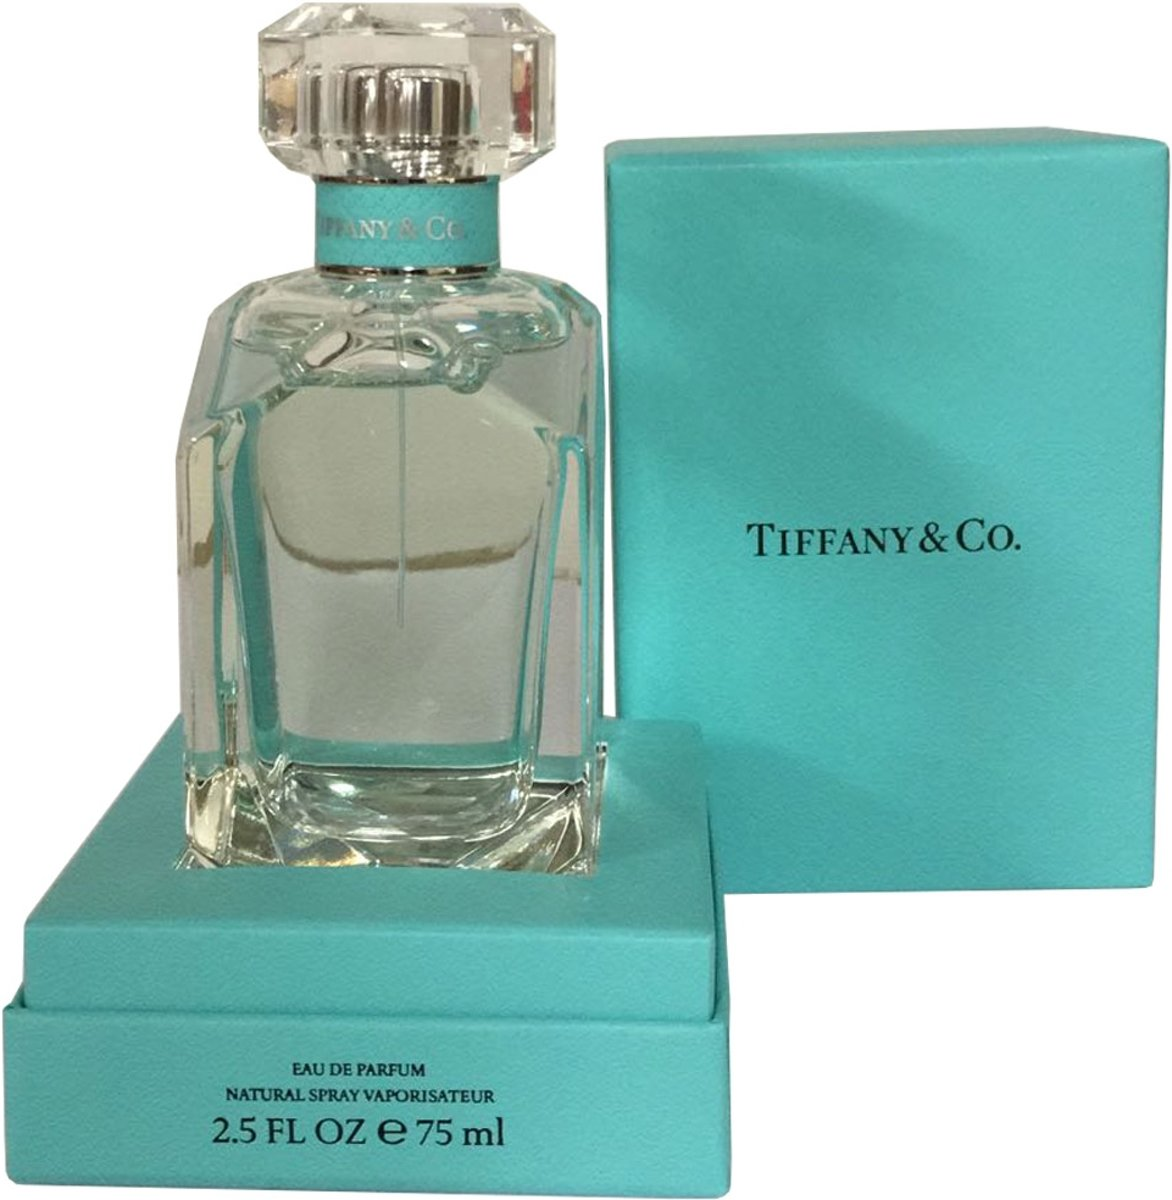 Tiffany & Co Tiffany & Co - Eau de parfum - Signature - 75 ml